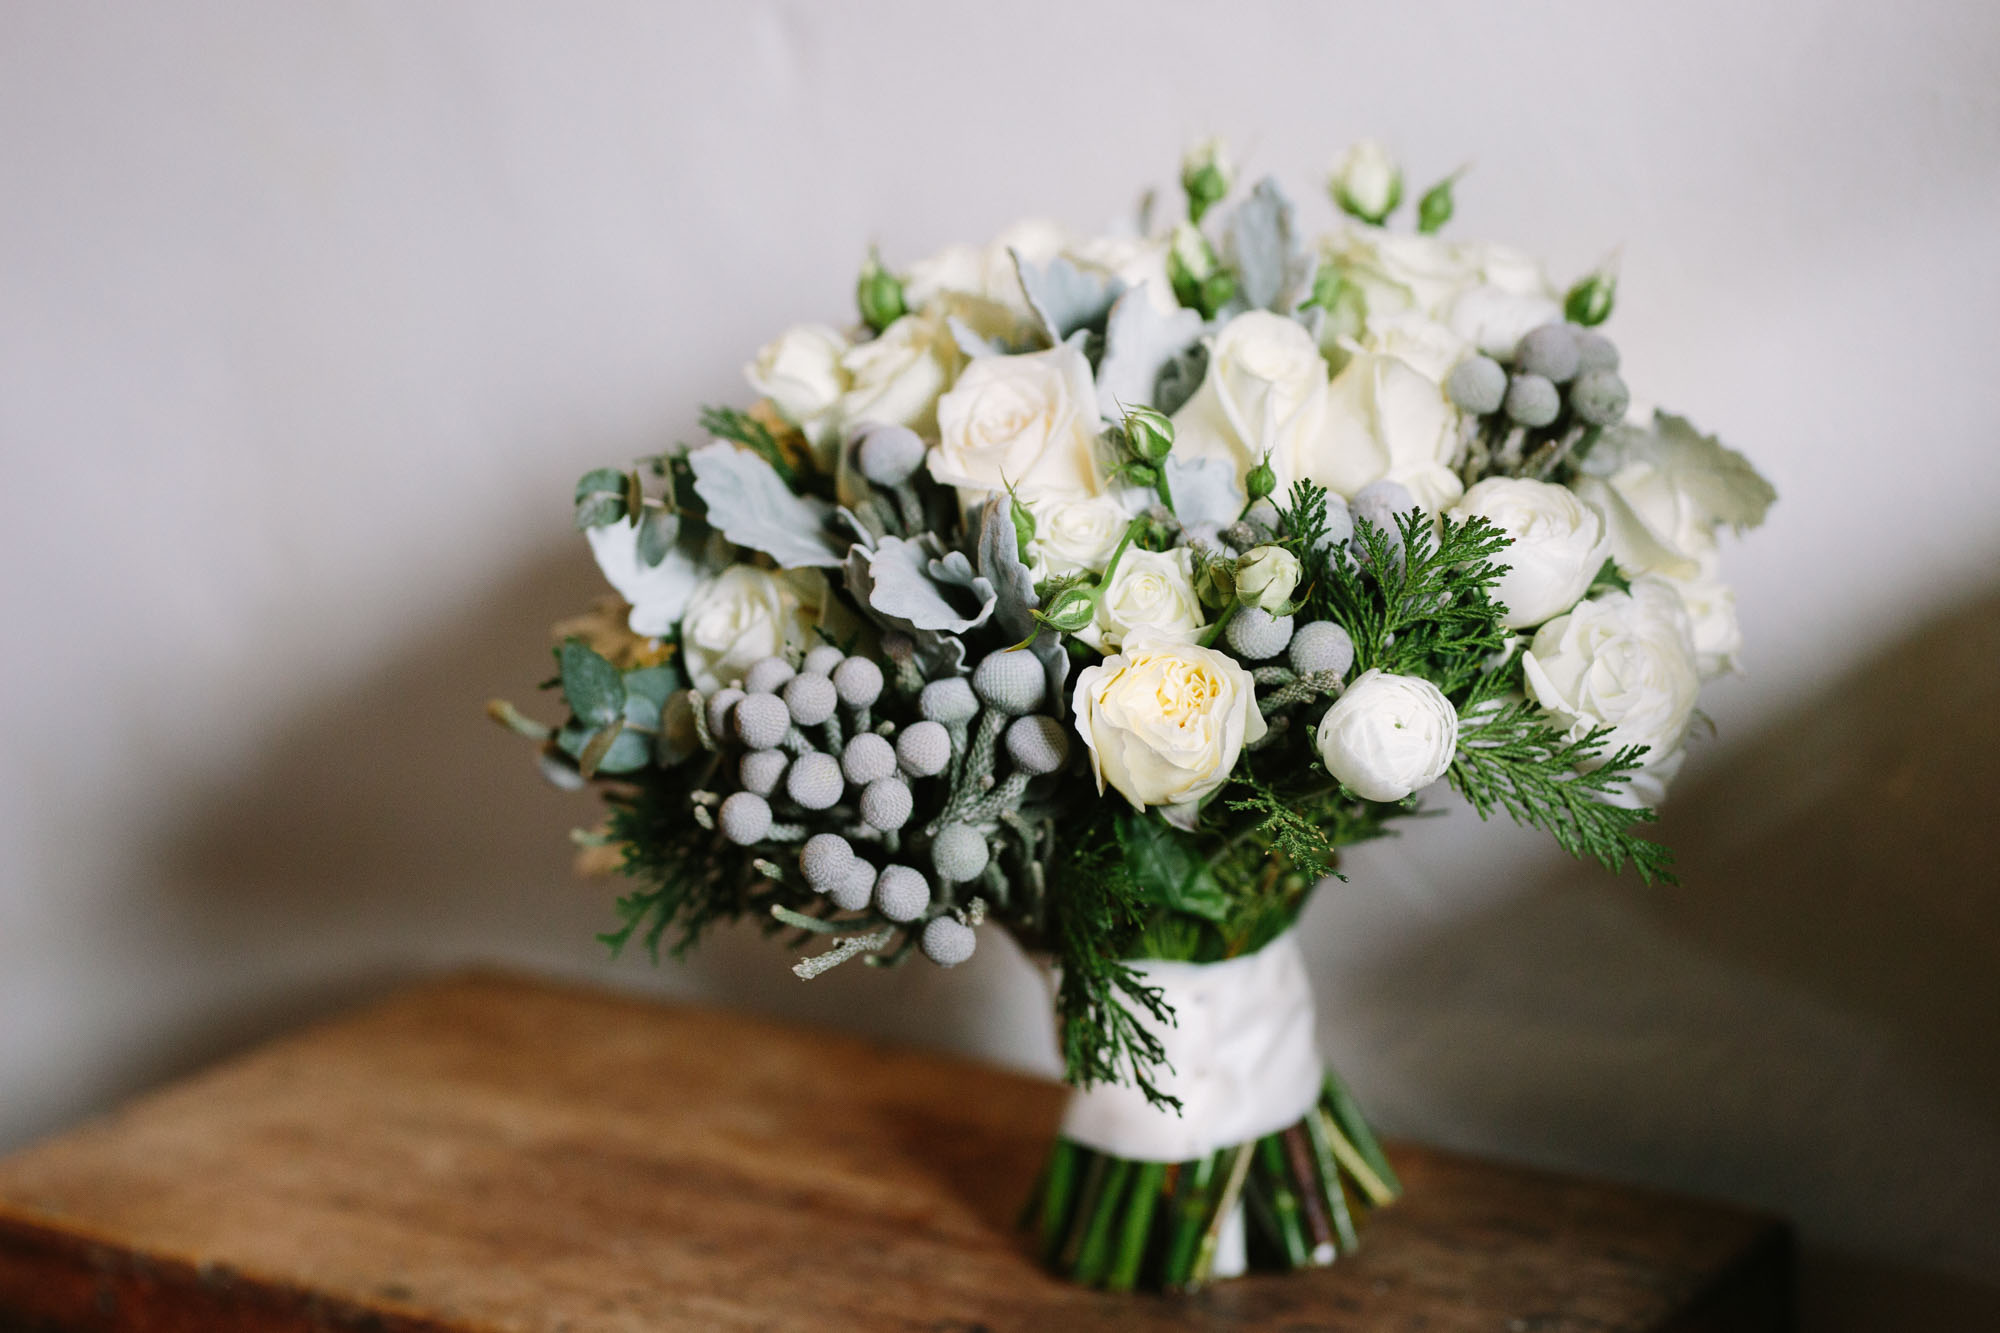 Green and white winter wedding bridal bouquet